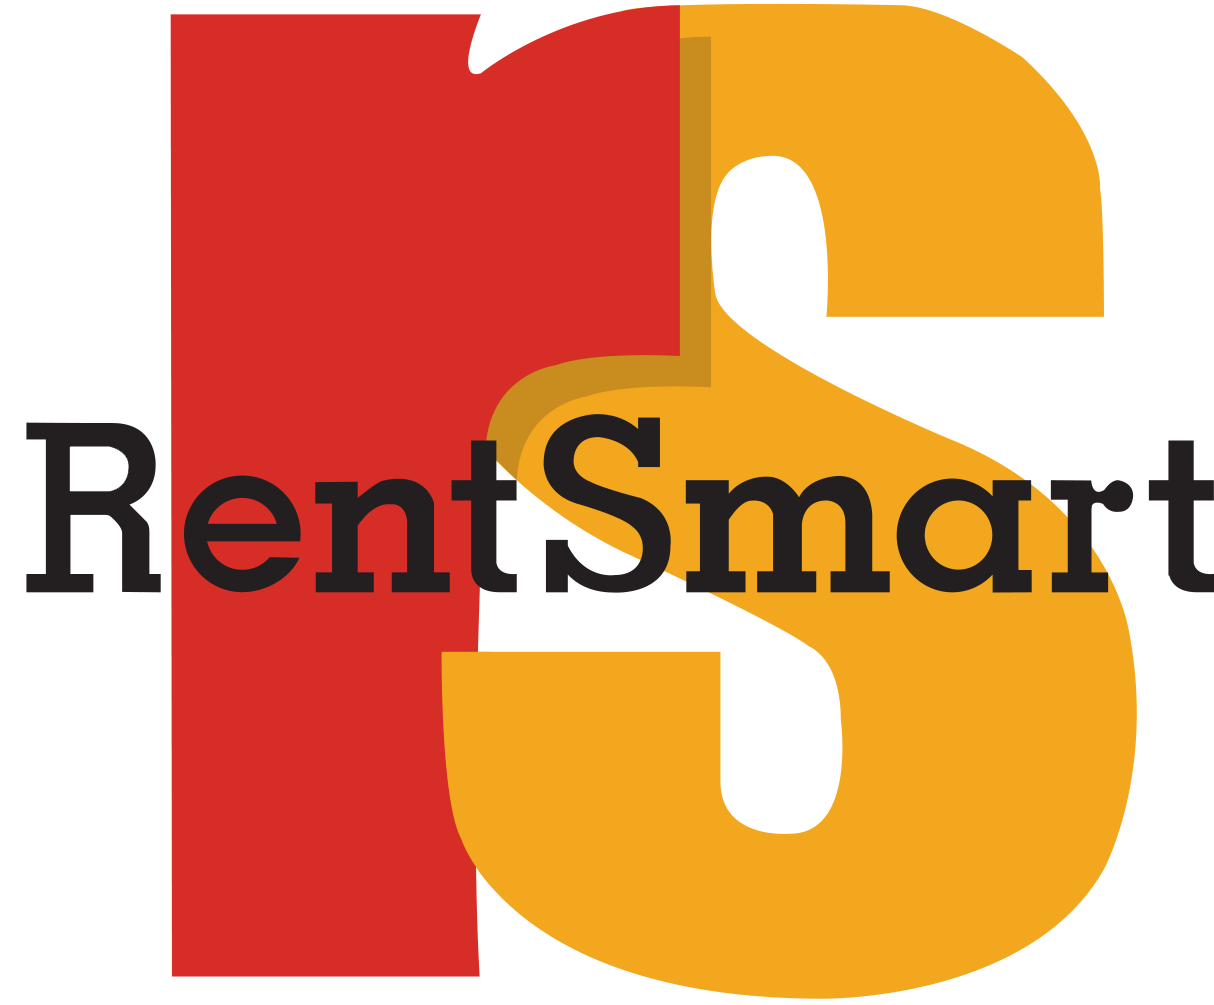 Rent Smart - Equipment Rentals in Grant MI & Newaygo County